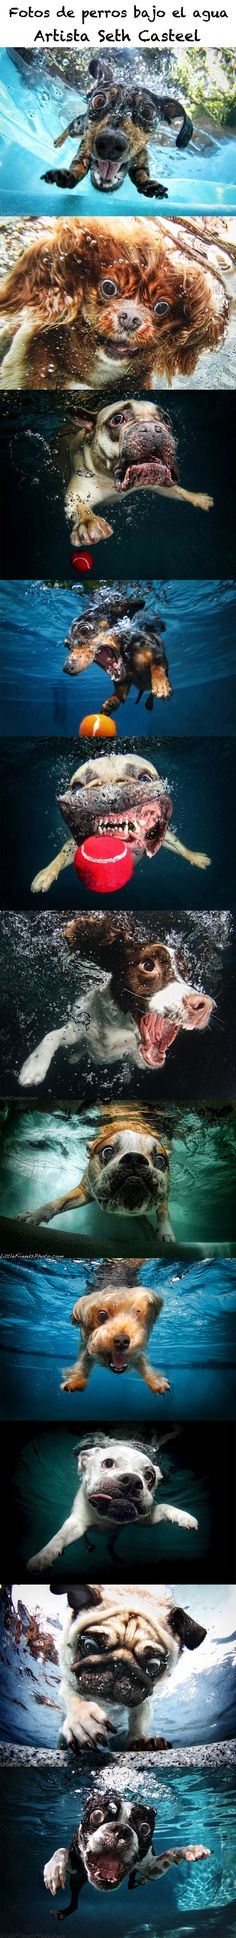 Photos of under water dog! Animals And Pets, Baby Animals, Funny Animals, Cute Animals, Cute Puppies, Cute Dogs, Dogs And Puppies, Doggies, Dogs Underwater